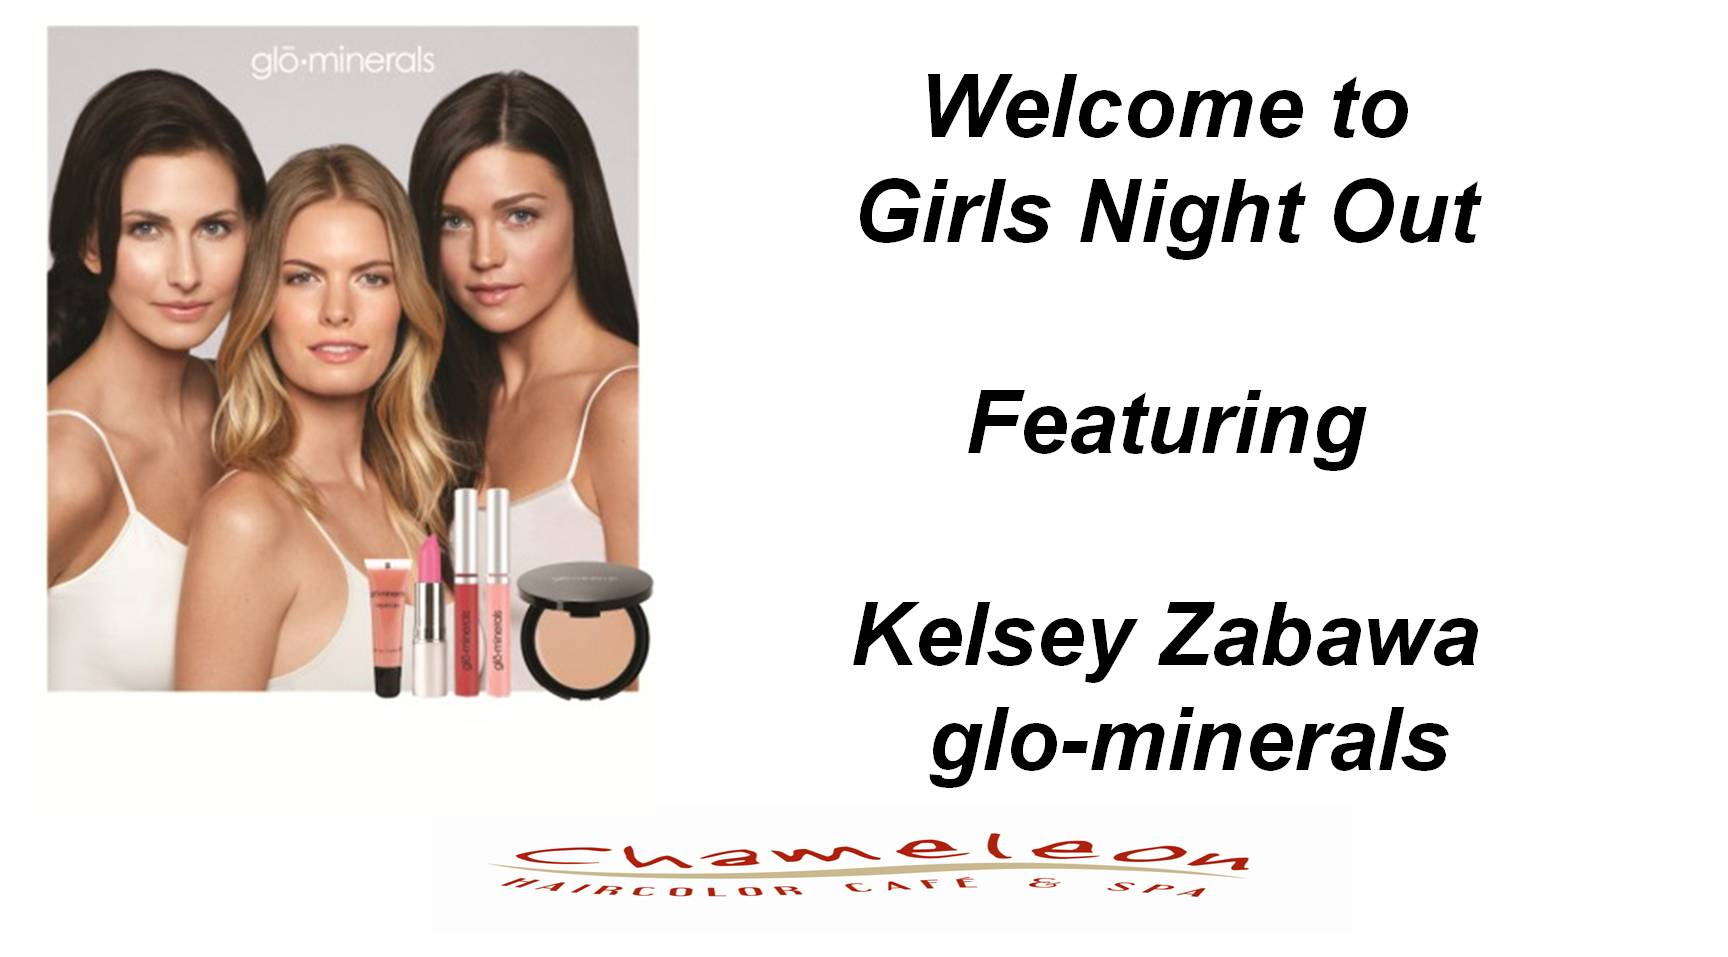 glo girls night out